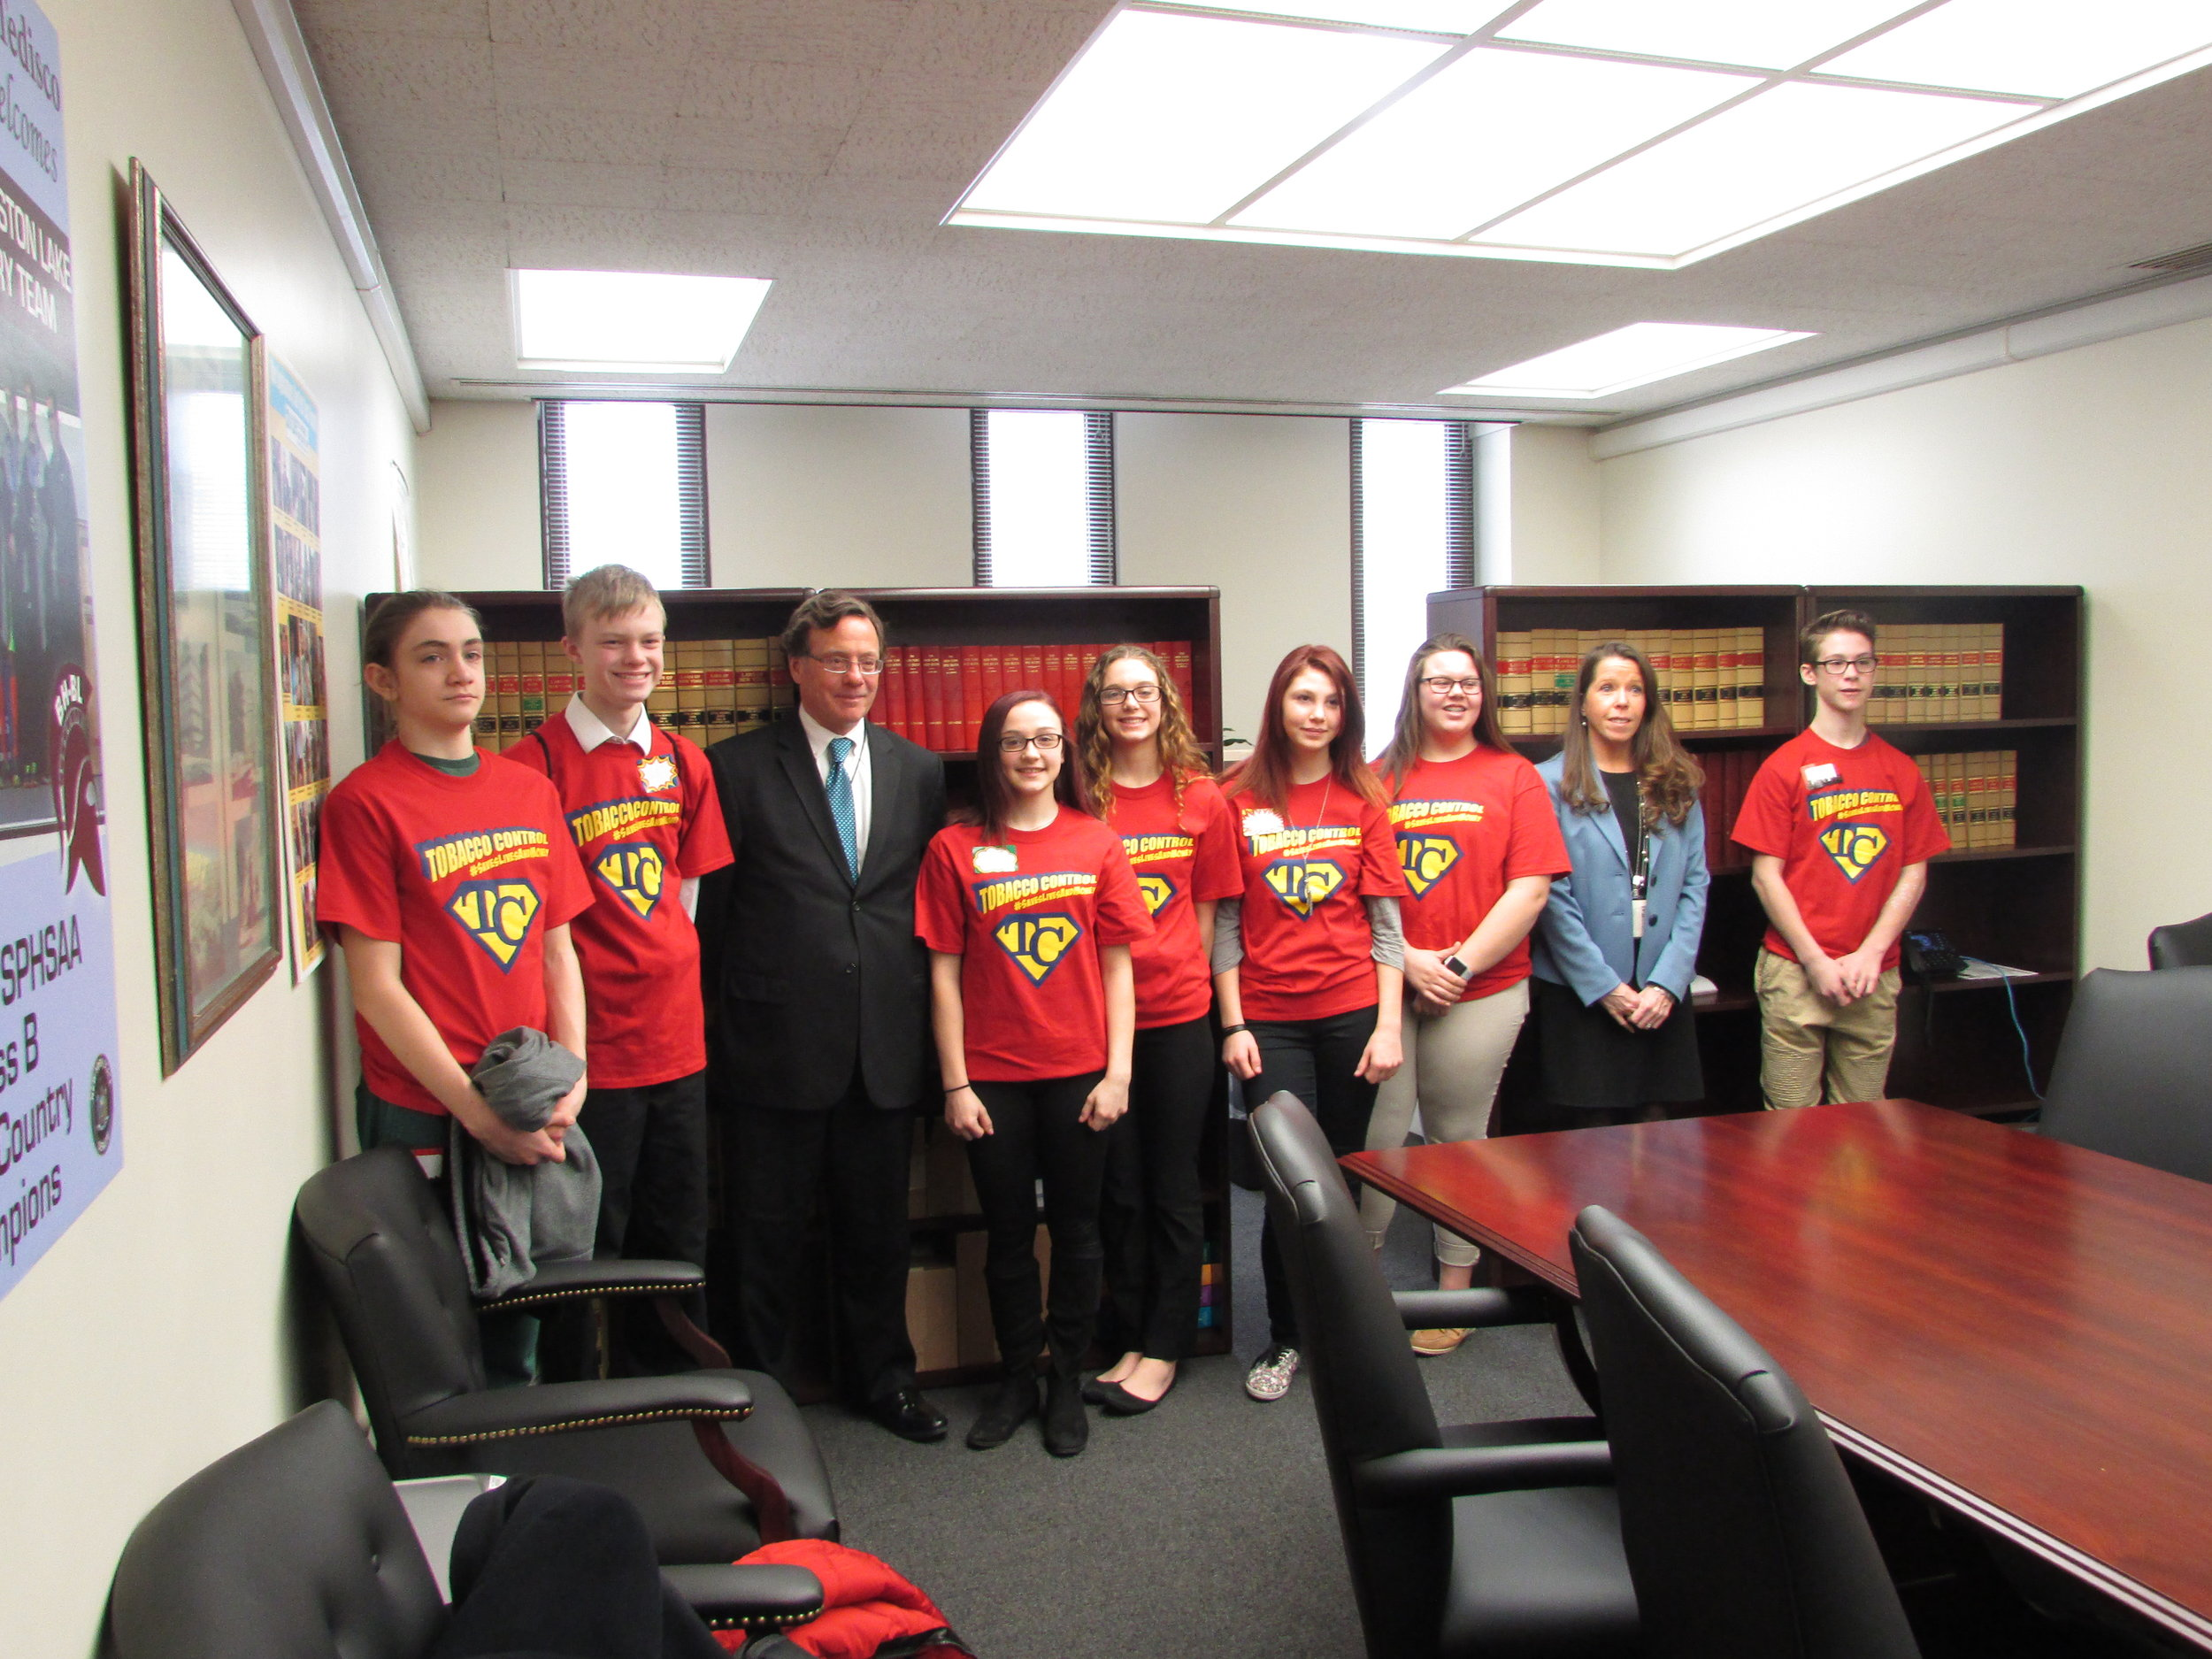 Herkimer and Fulton RC Youth - Herkimer and Fulton RC Youth bringing their message to Senator Tediscos' office.